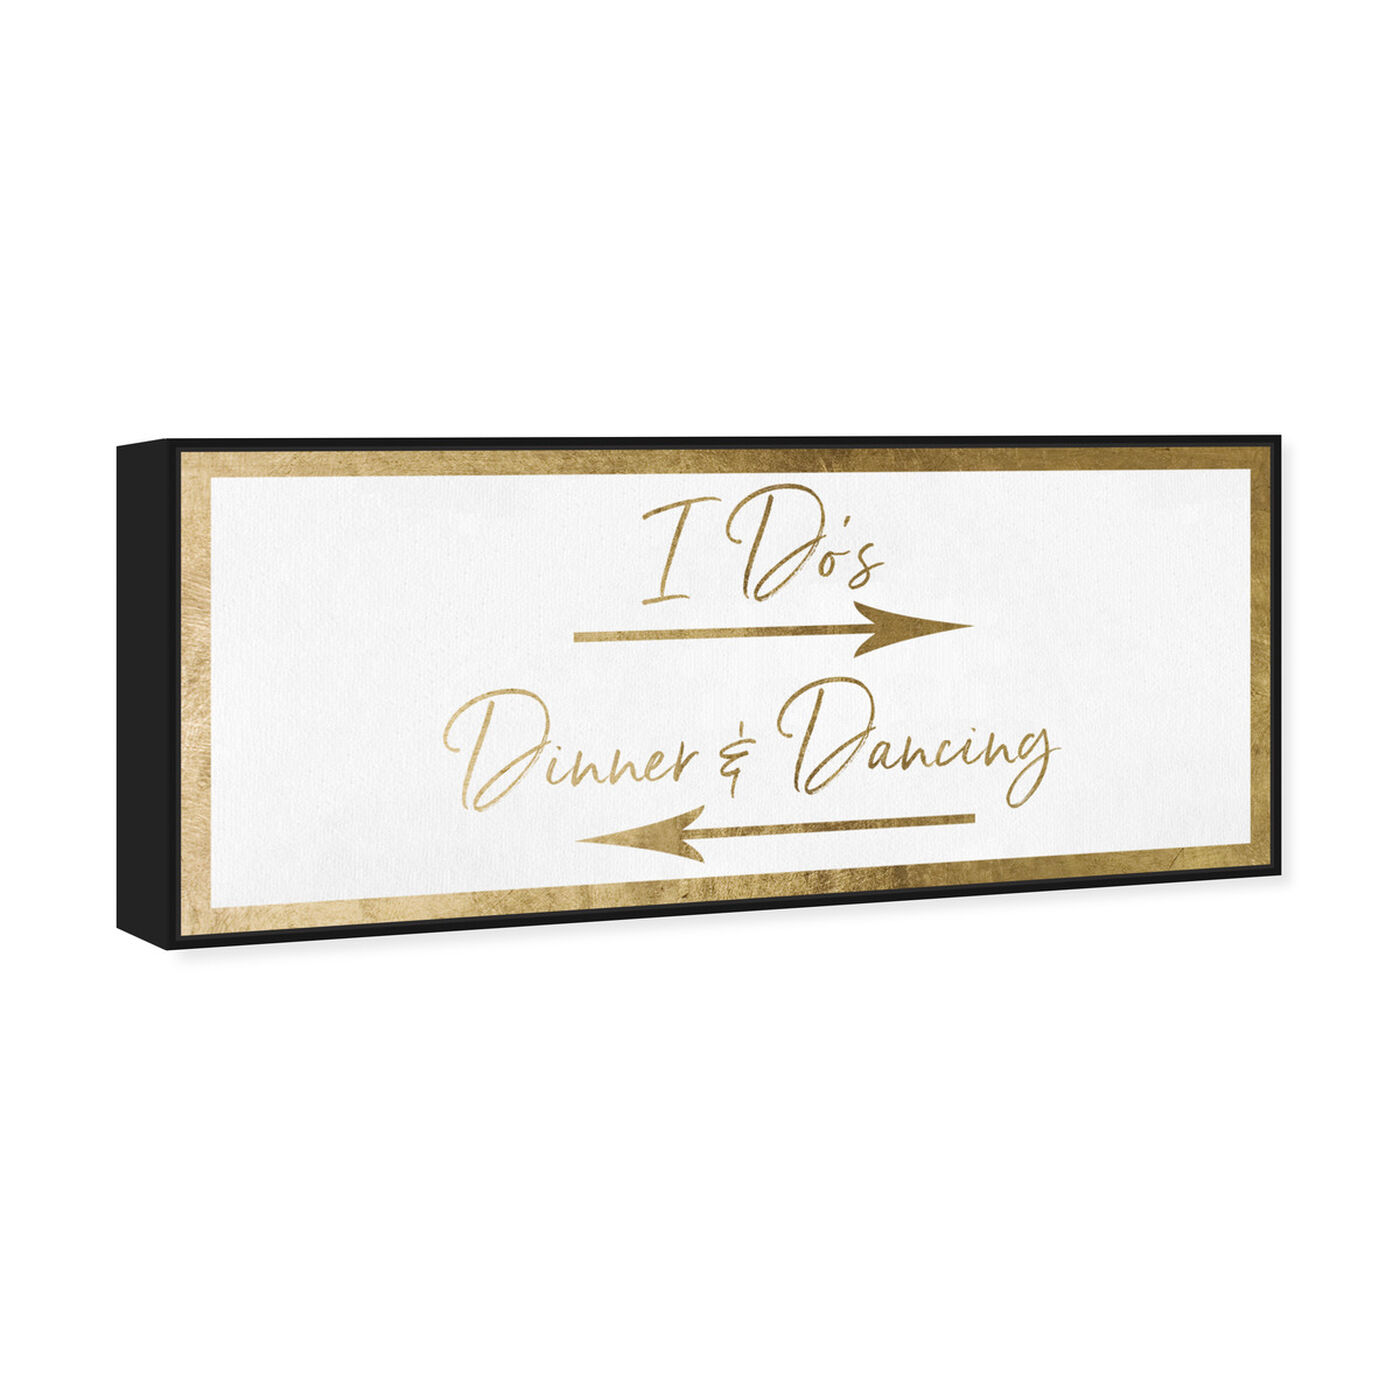 Angled view of Dinner and Dancing Gold featuring typography and quotes and love quotes and sayings art.